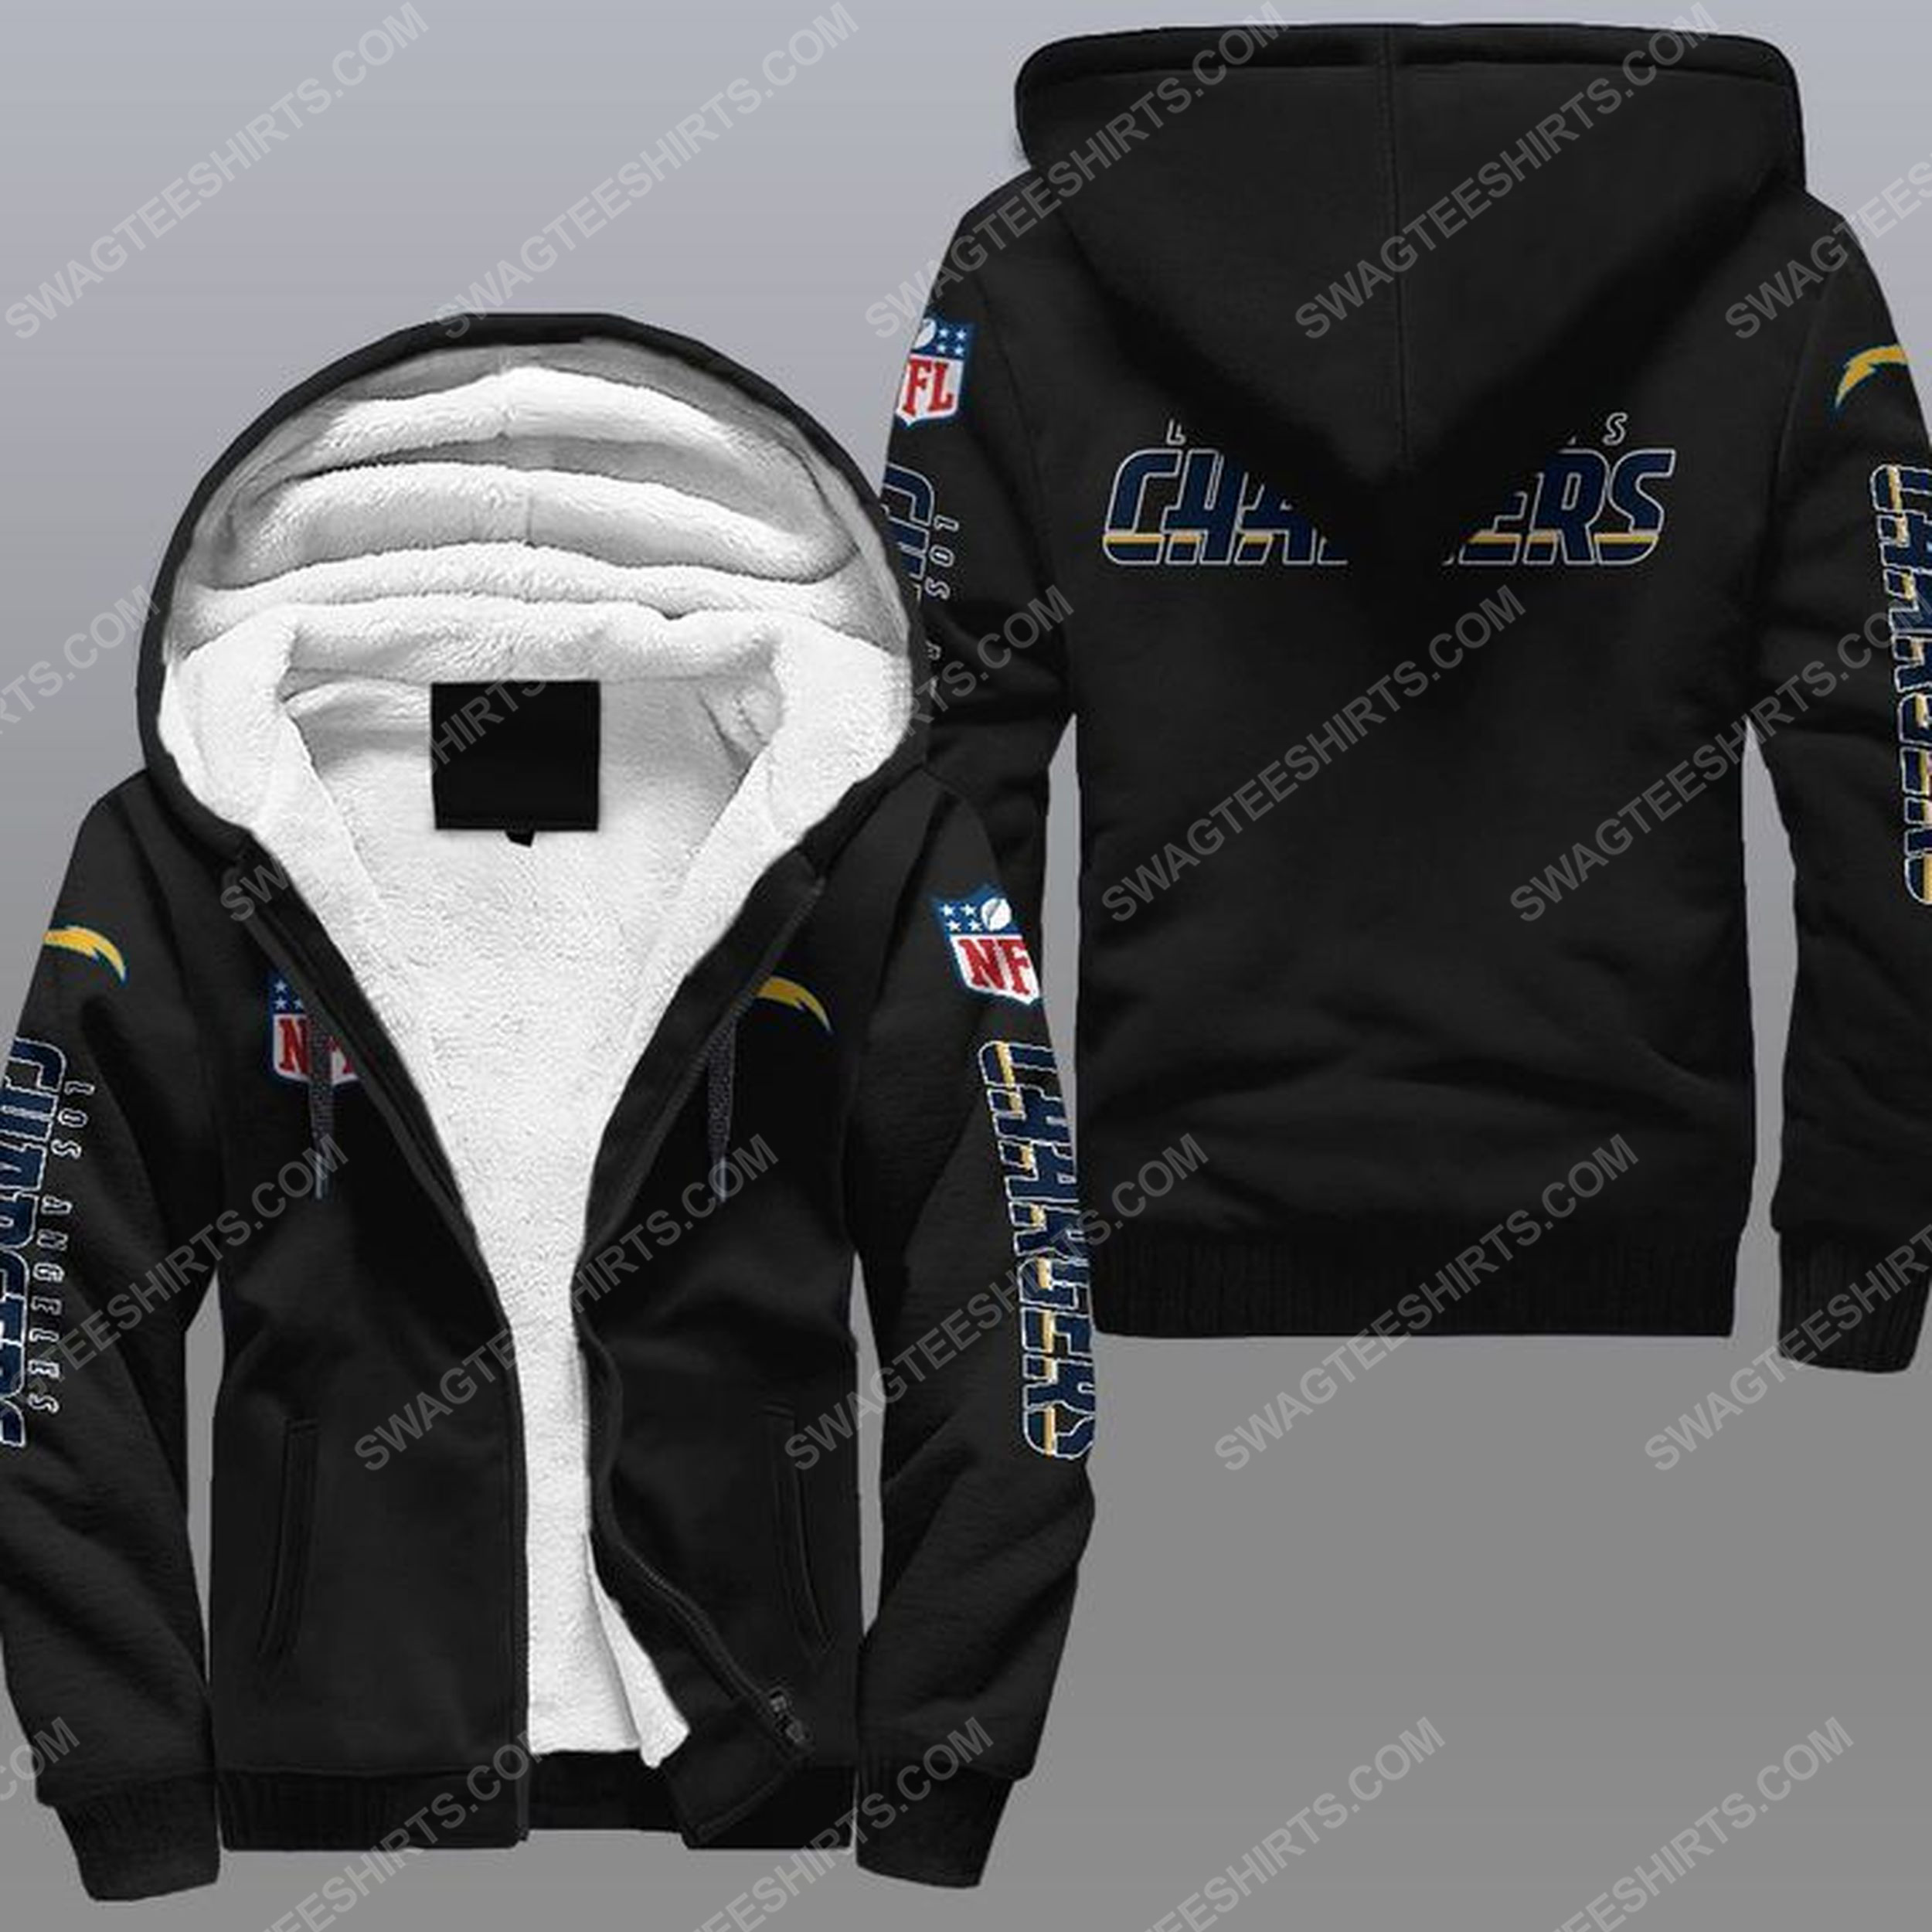 The los angeles chargers nfl all over print fleece hoodie - black 1